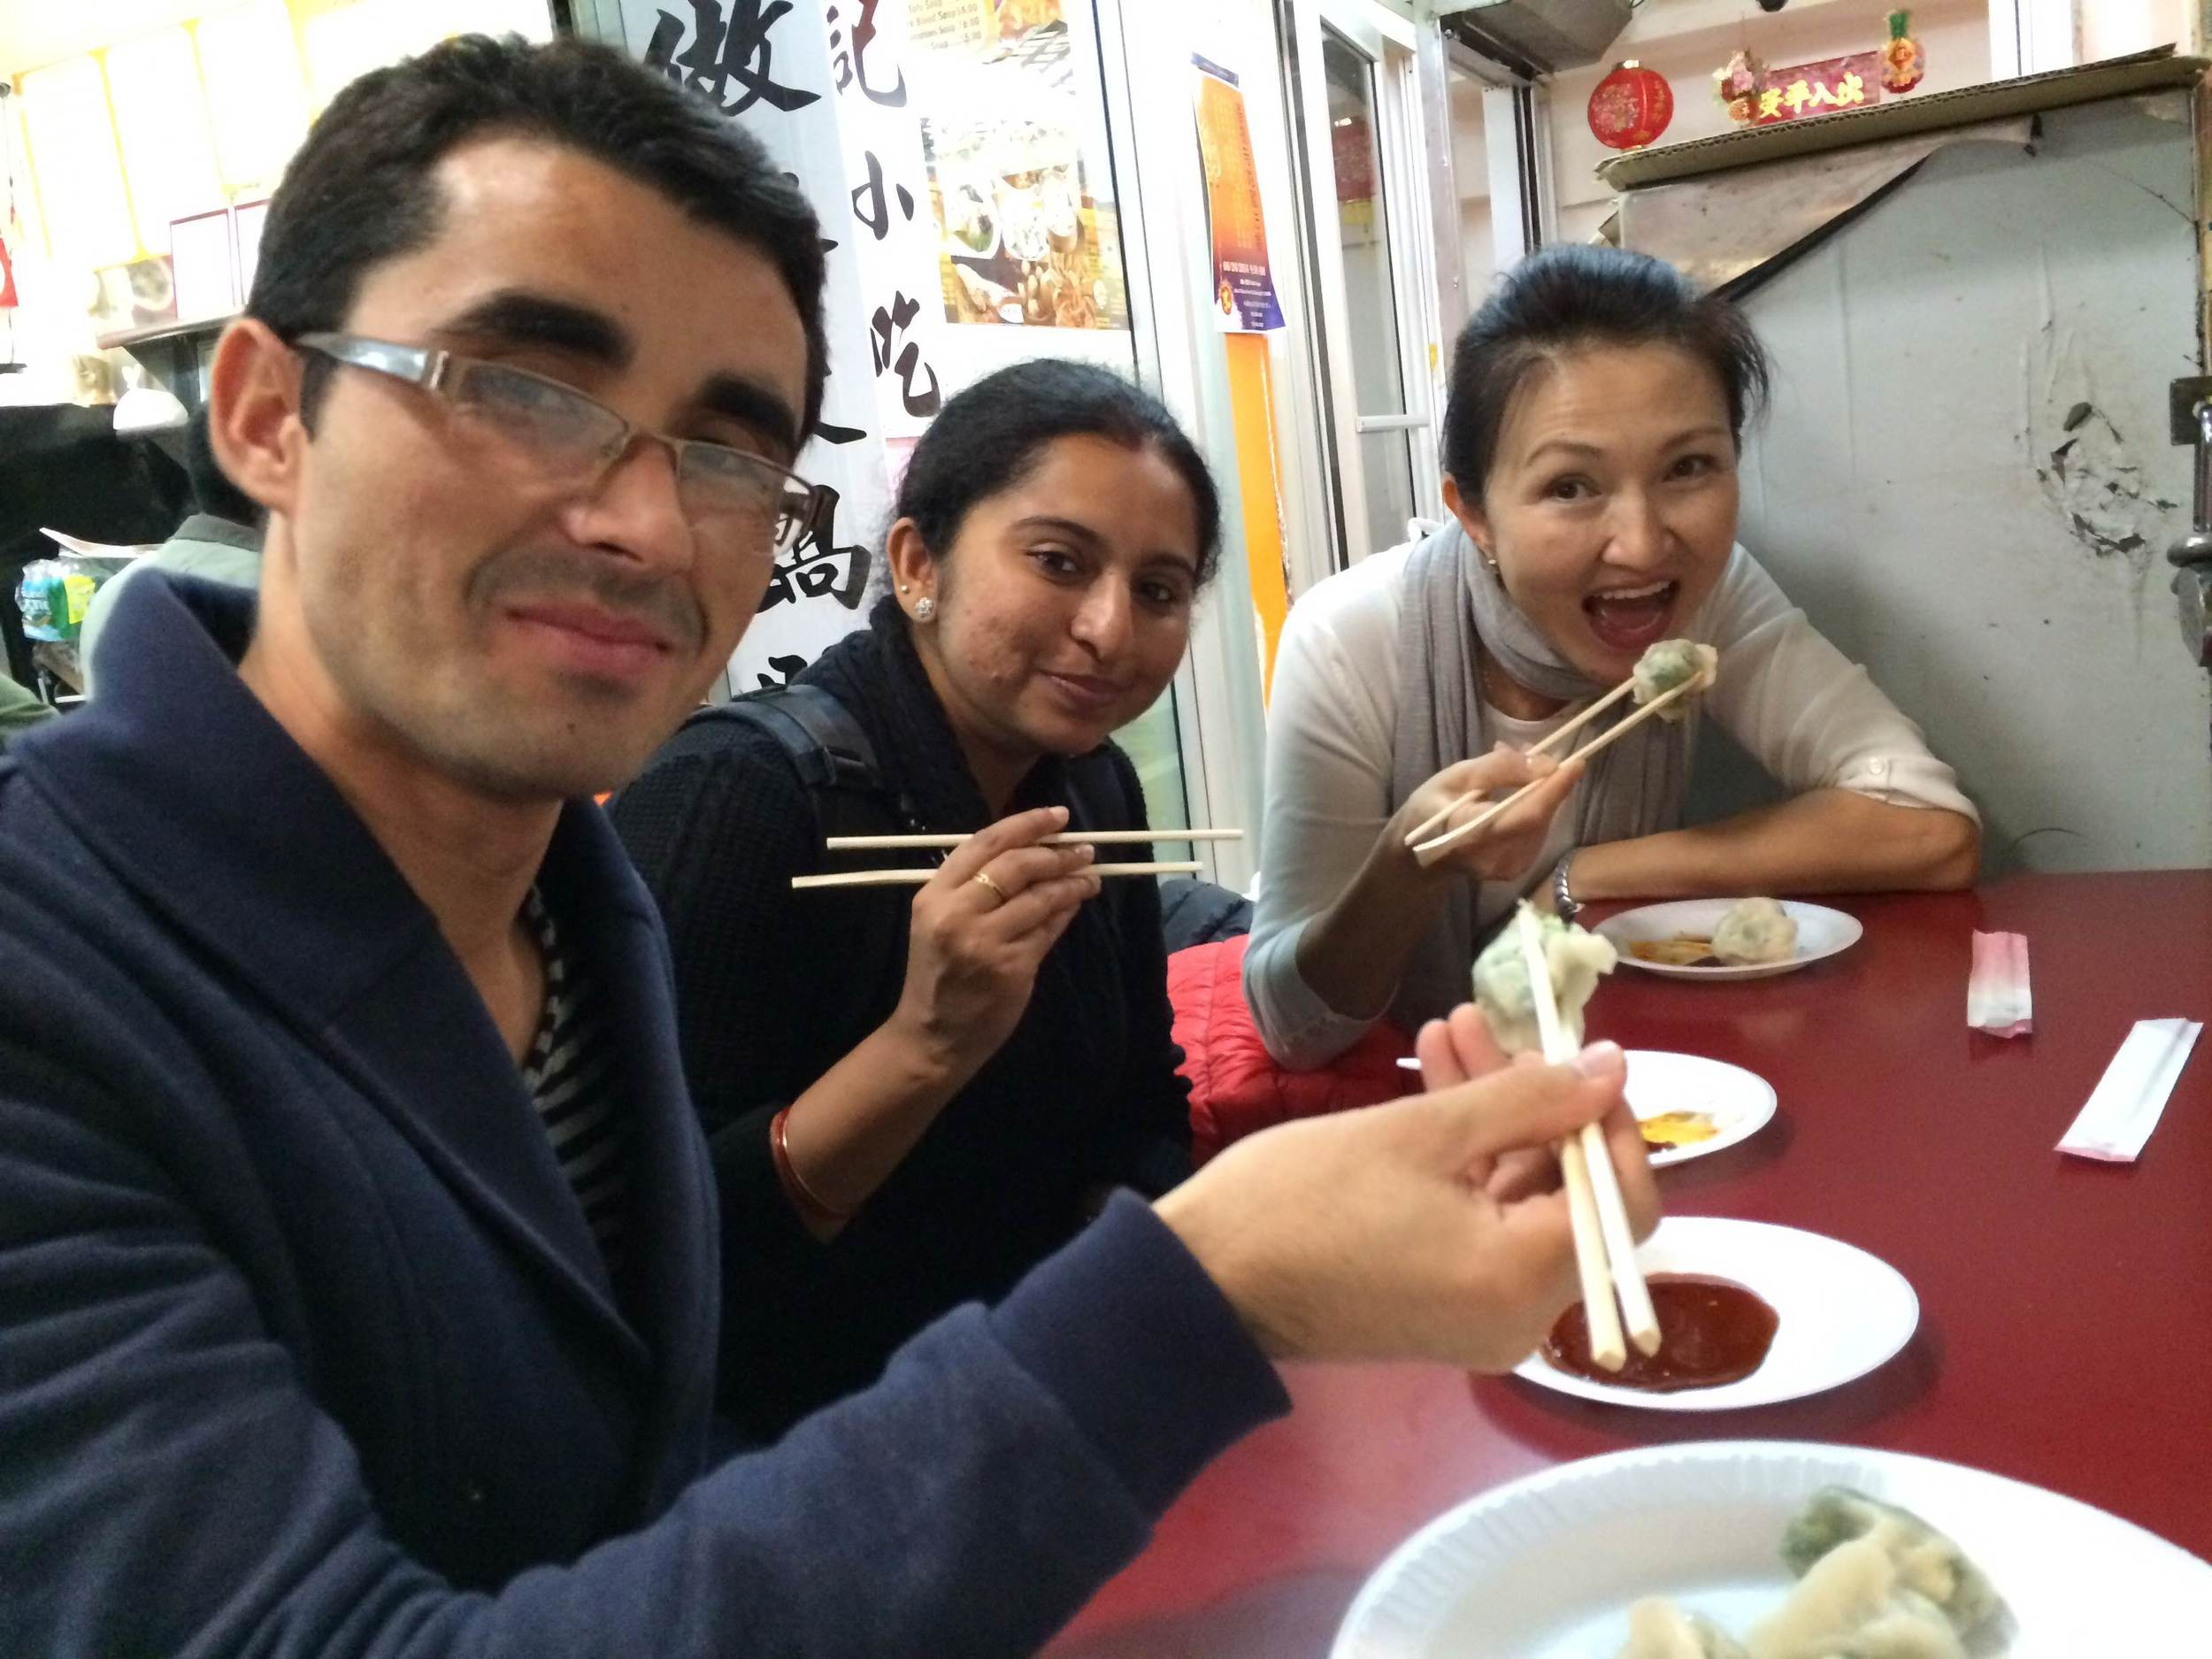 Eating dumplings in Flushing as part of the One-to-World Discover New York day. Left to right: Sayeed (Afghanistan), Nidhitha (India), Farida (Kyrgyzstan) at Golden Mall in Flushing.